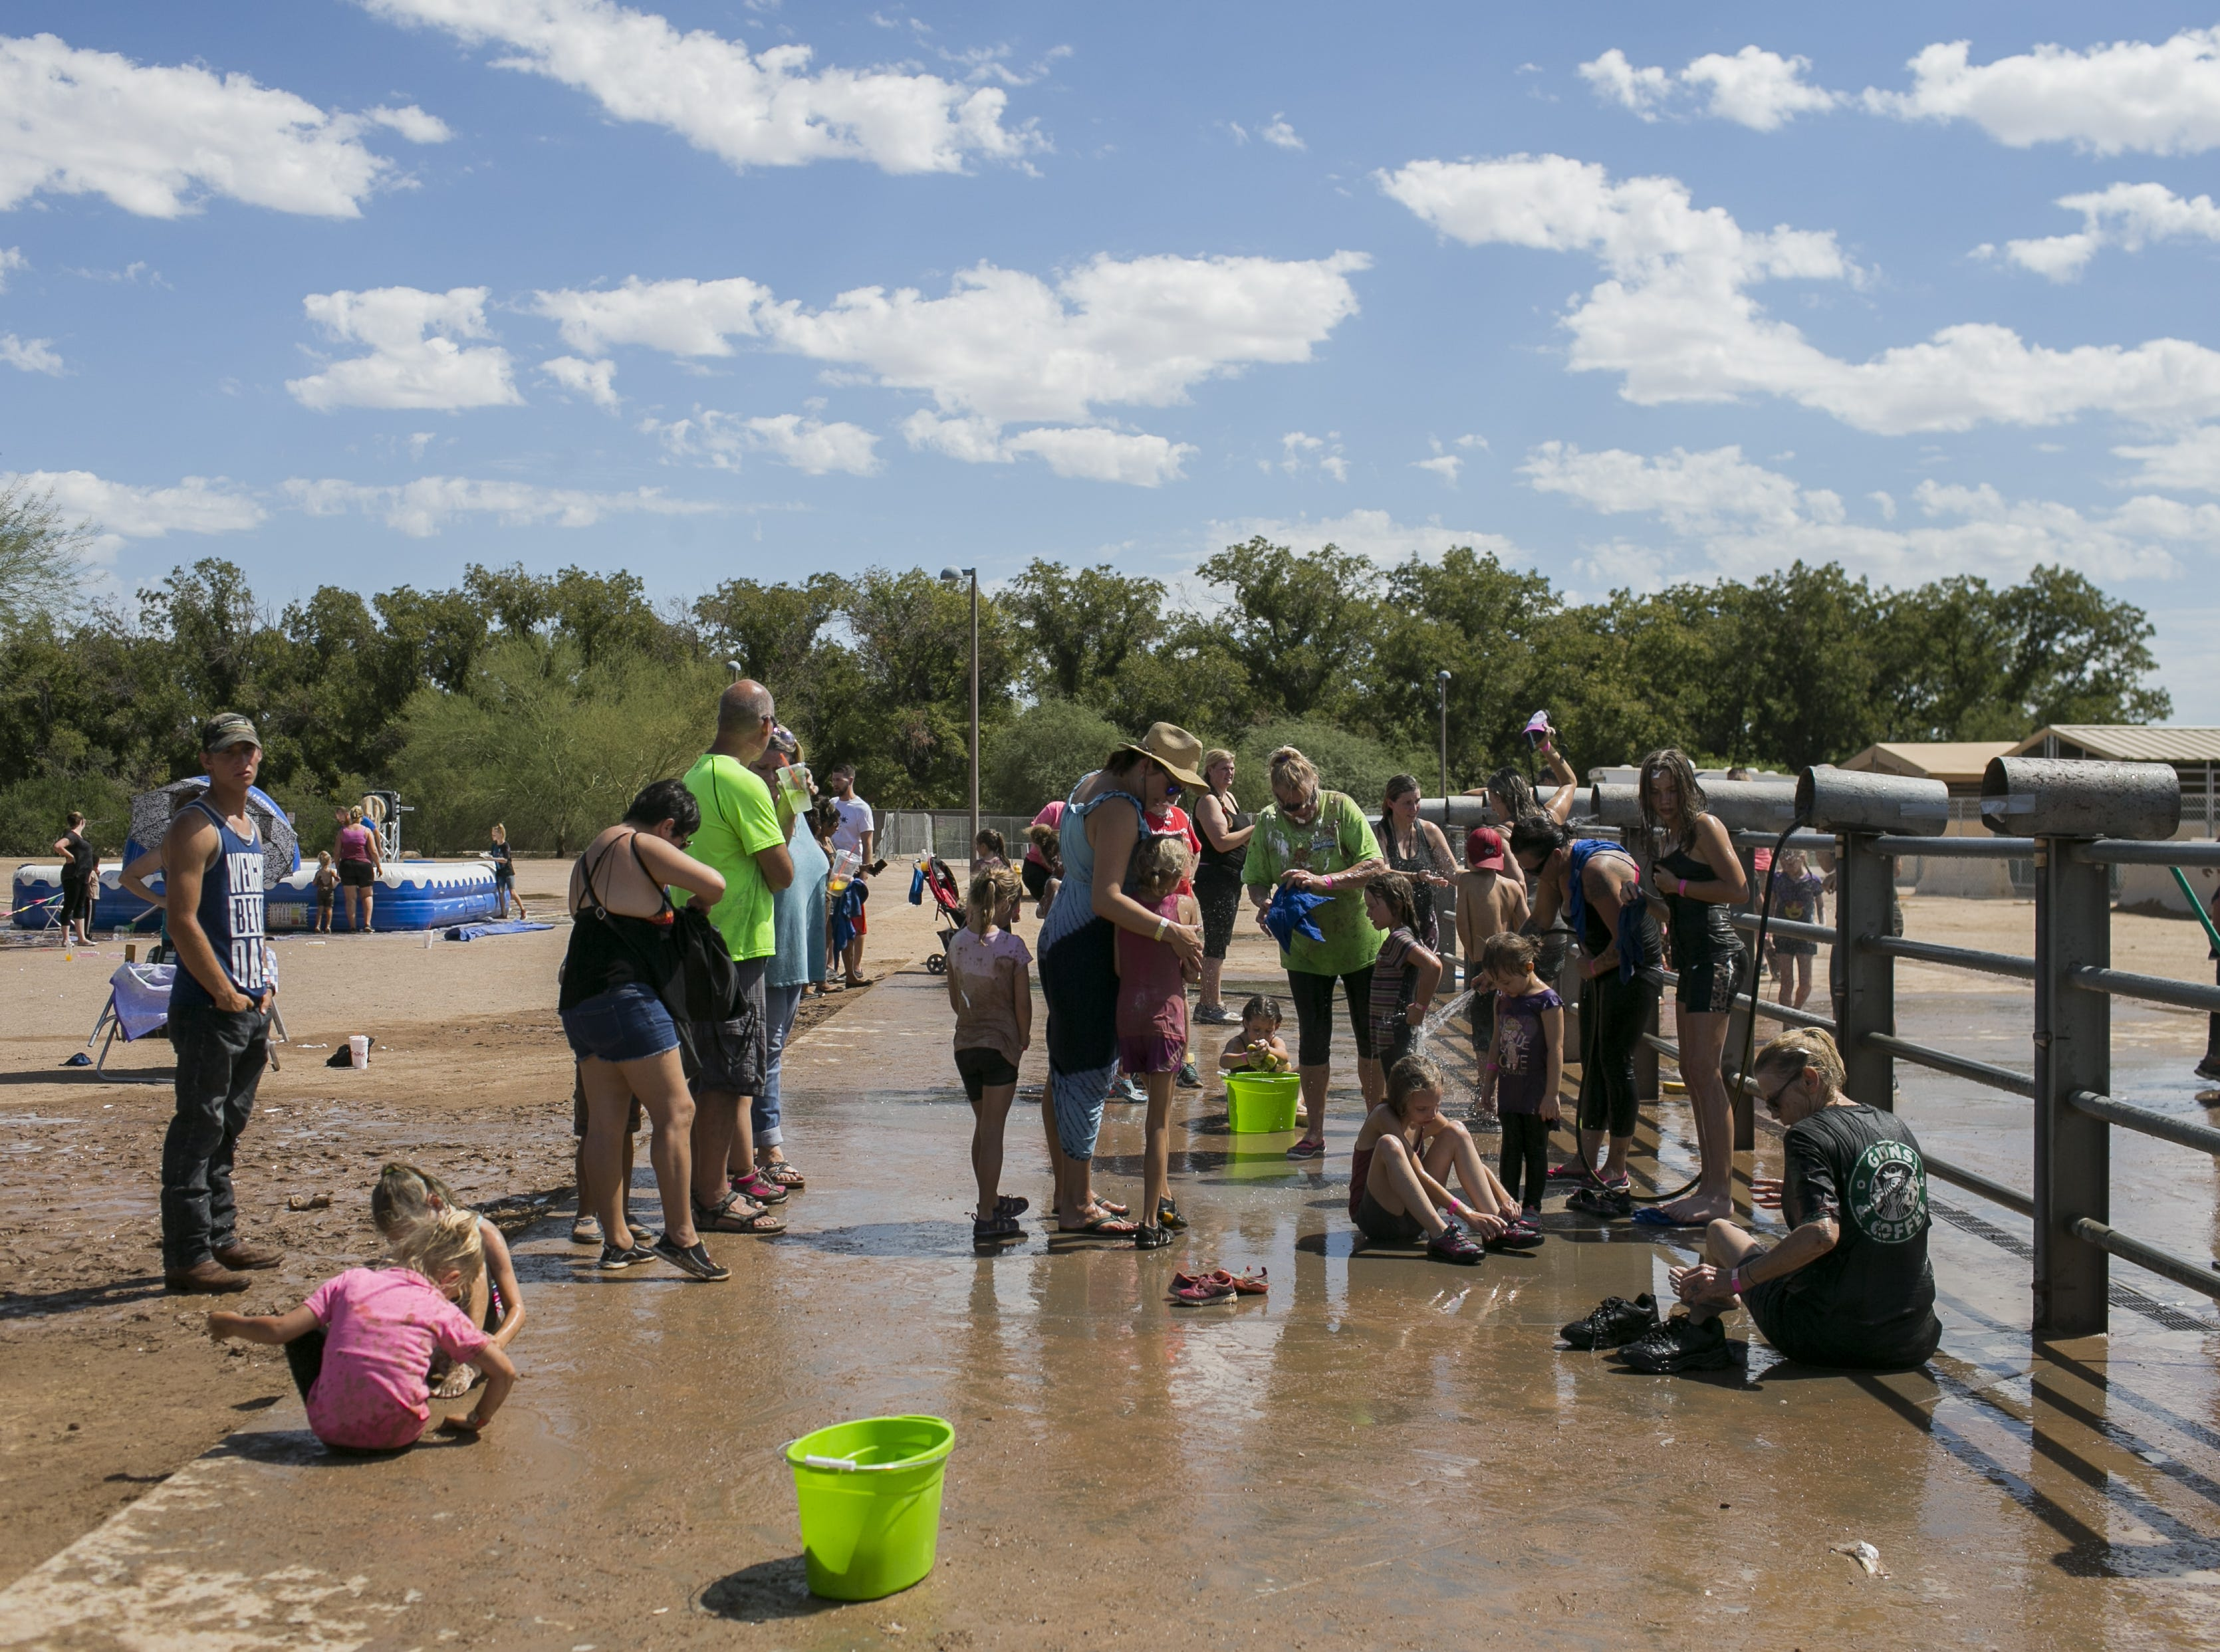 Families line up to rinse off at the the third annual Messy Fest in Queen Creek on Saturday, Sept. 15, 2018.